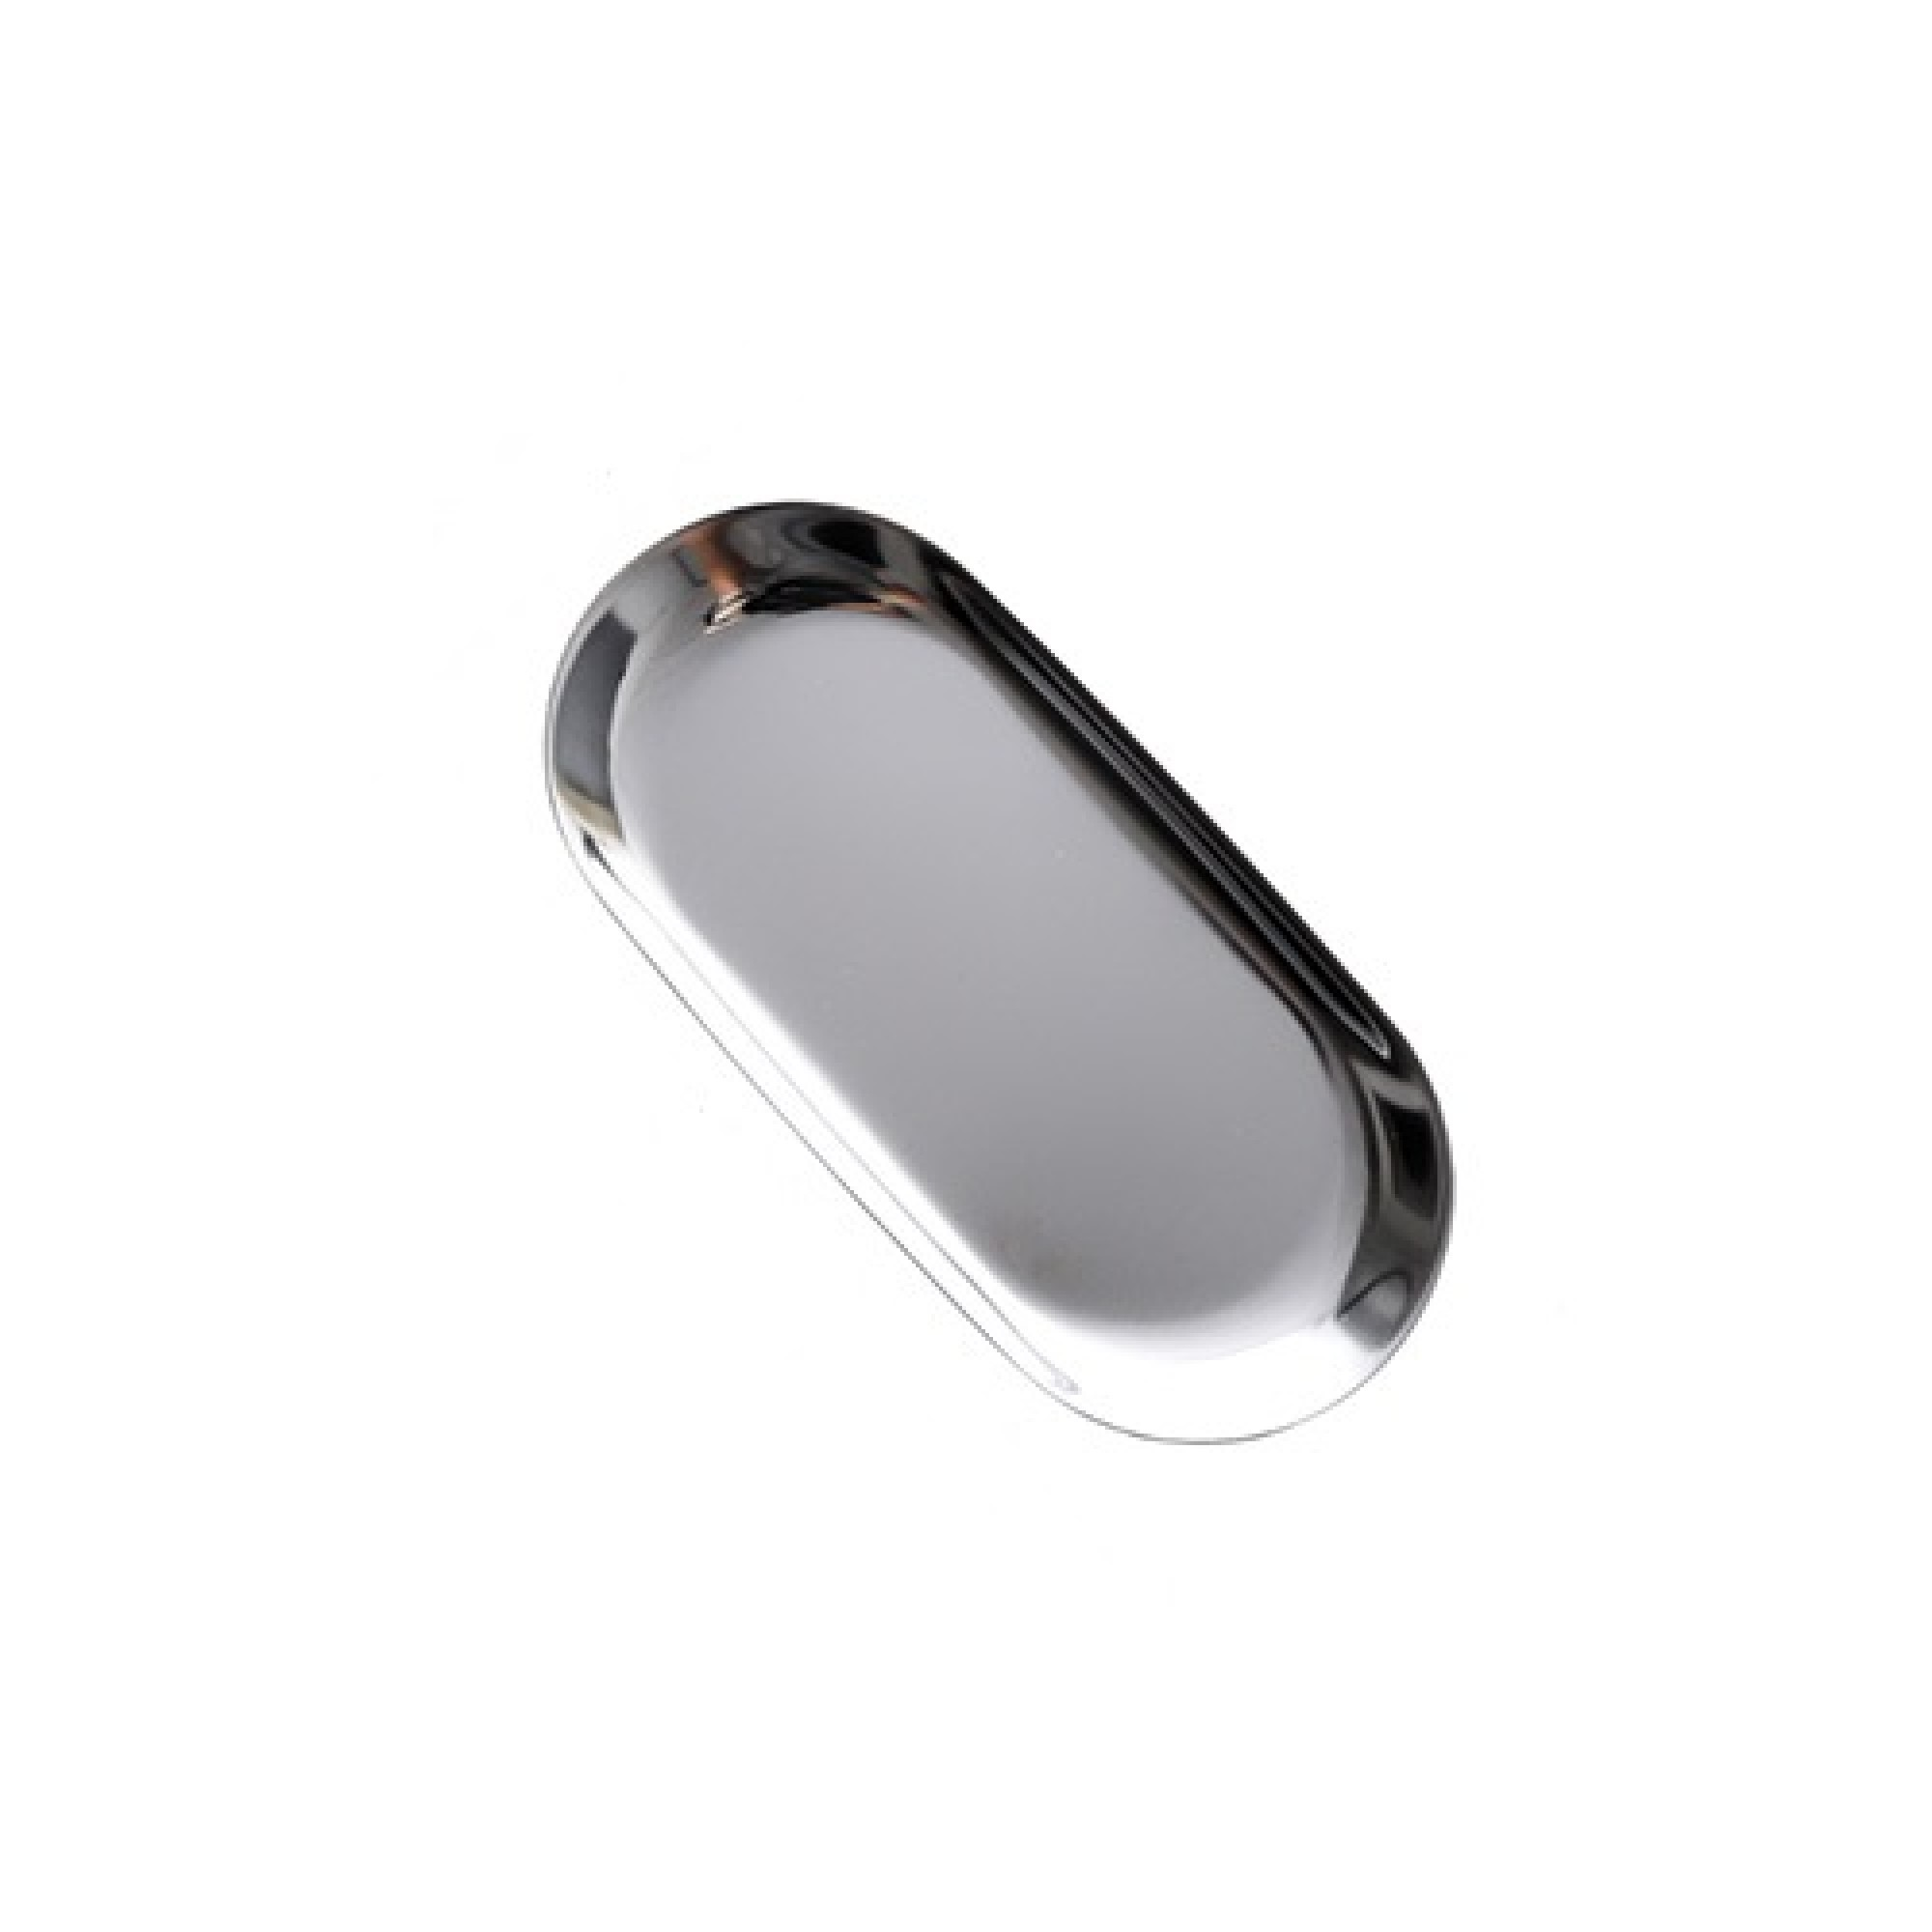 Silver Stainless steel tray, M - Alder